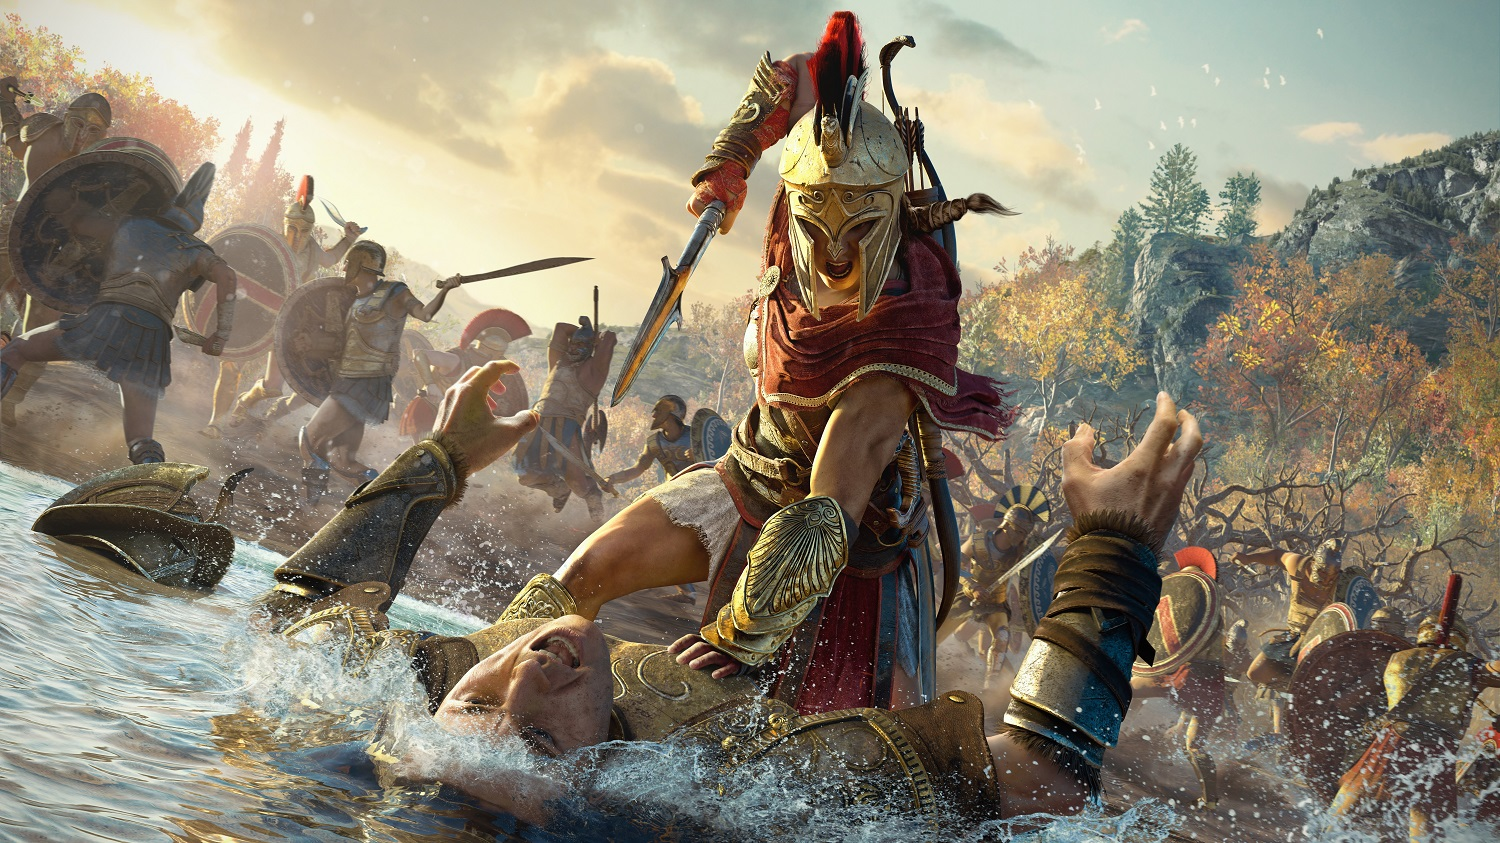 Assassin's Creed Odyssey AC Odyssey Xbox One X PlayStation 4 Pro PS4 Pro PC Ubisoft Test Kritik Review Titel